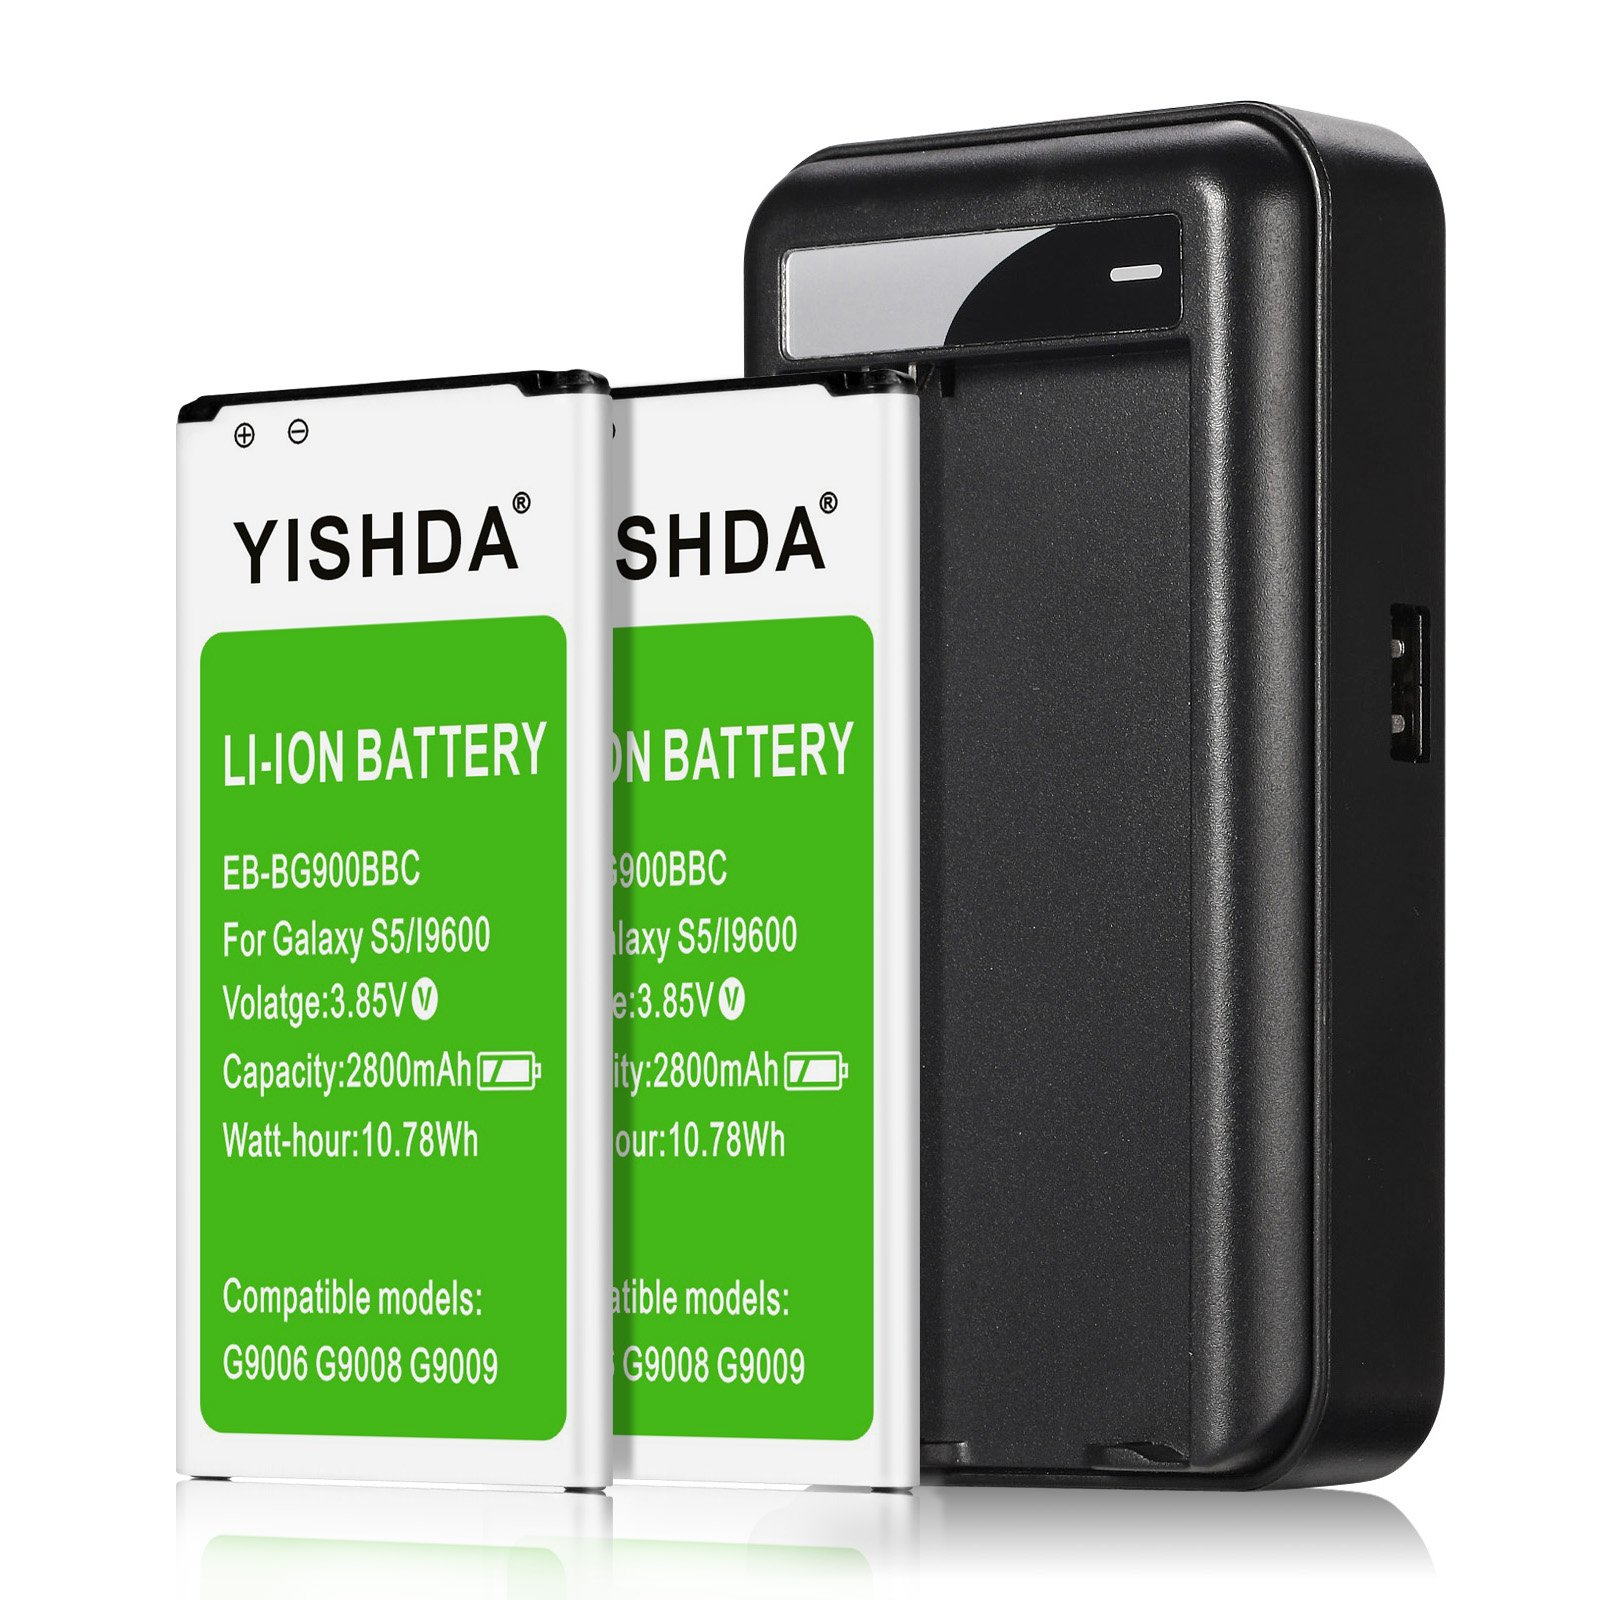 Galaxy S5 Batteries YISHDA 2X 2800mAh Replacement Samsung Galaxy S5 Battery with Galaxy S5 Battery Wall Charger for Samsung Galaxy S5/S5 Active I9600 G900F G900V G900T G900A [18 Month Warranty]